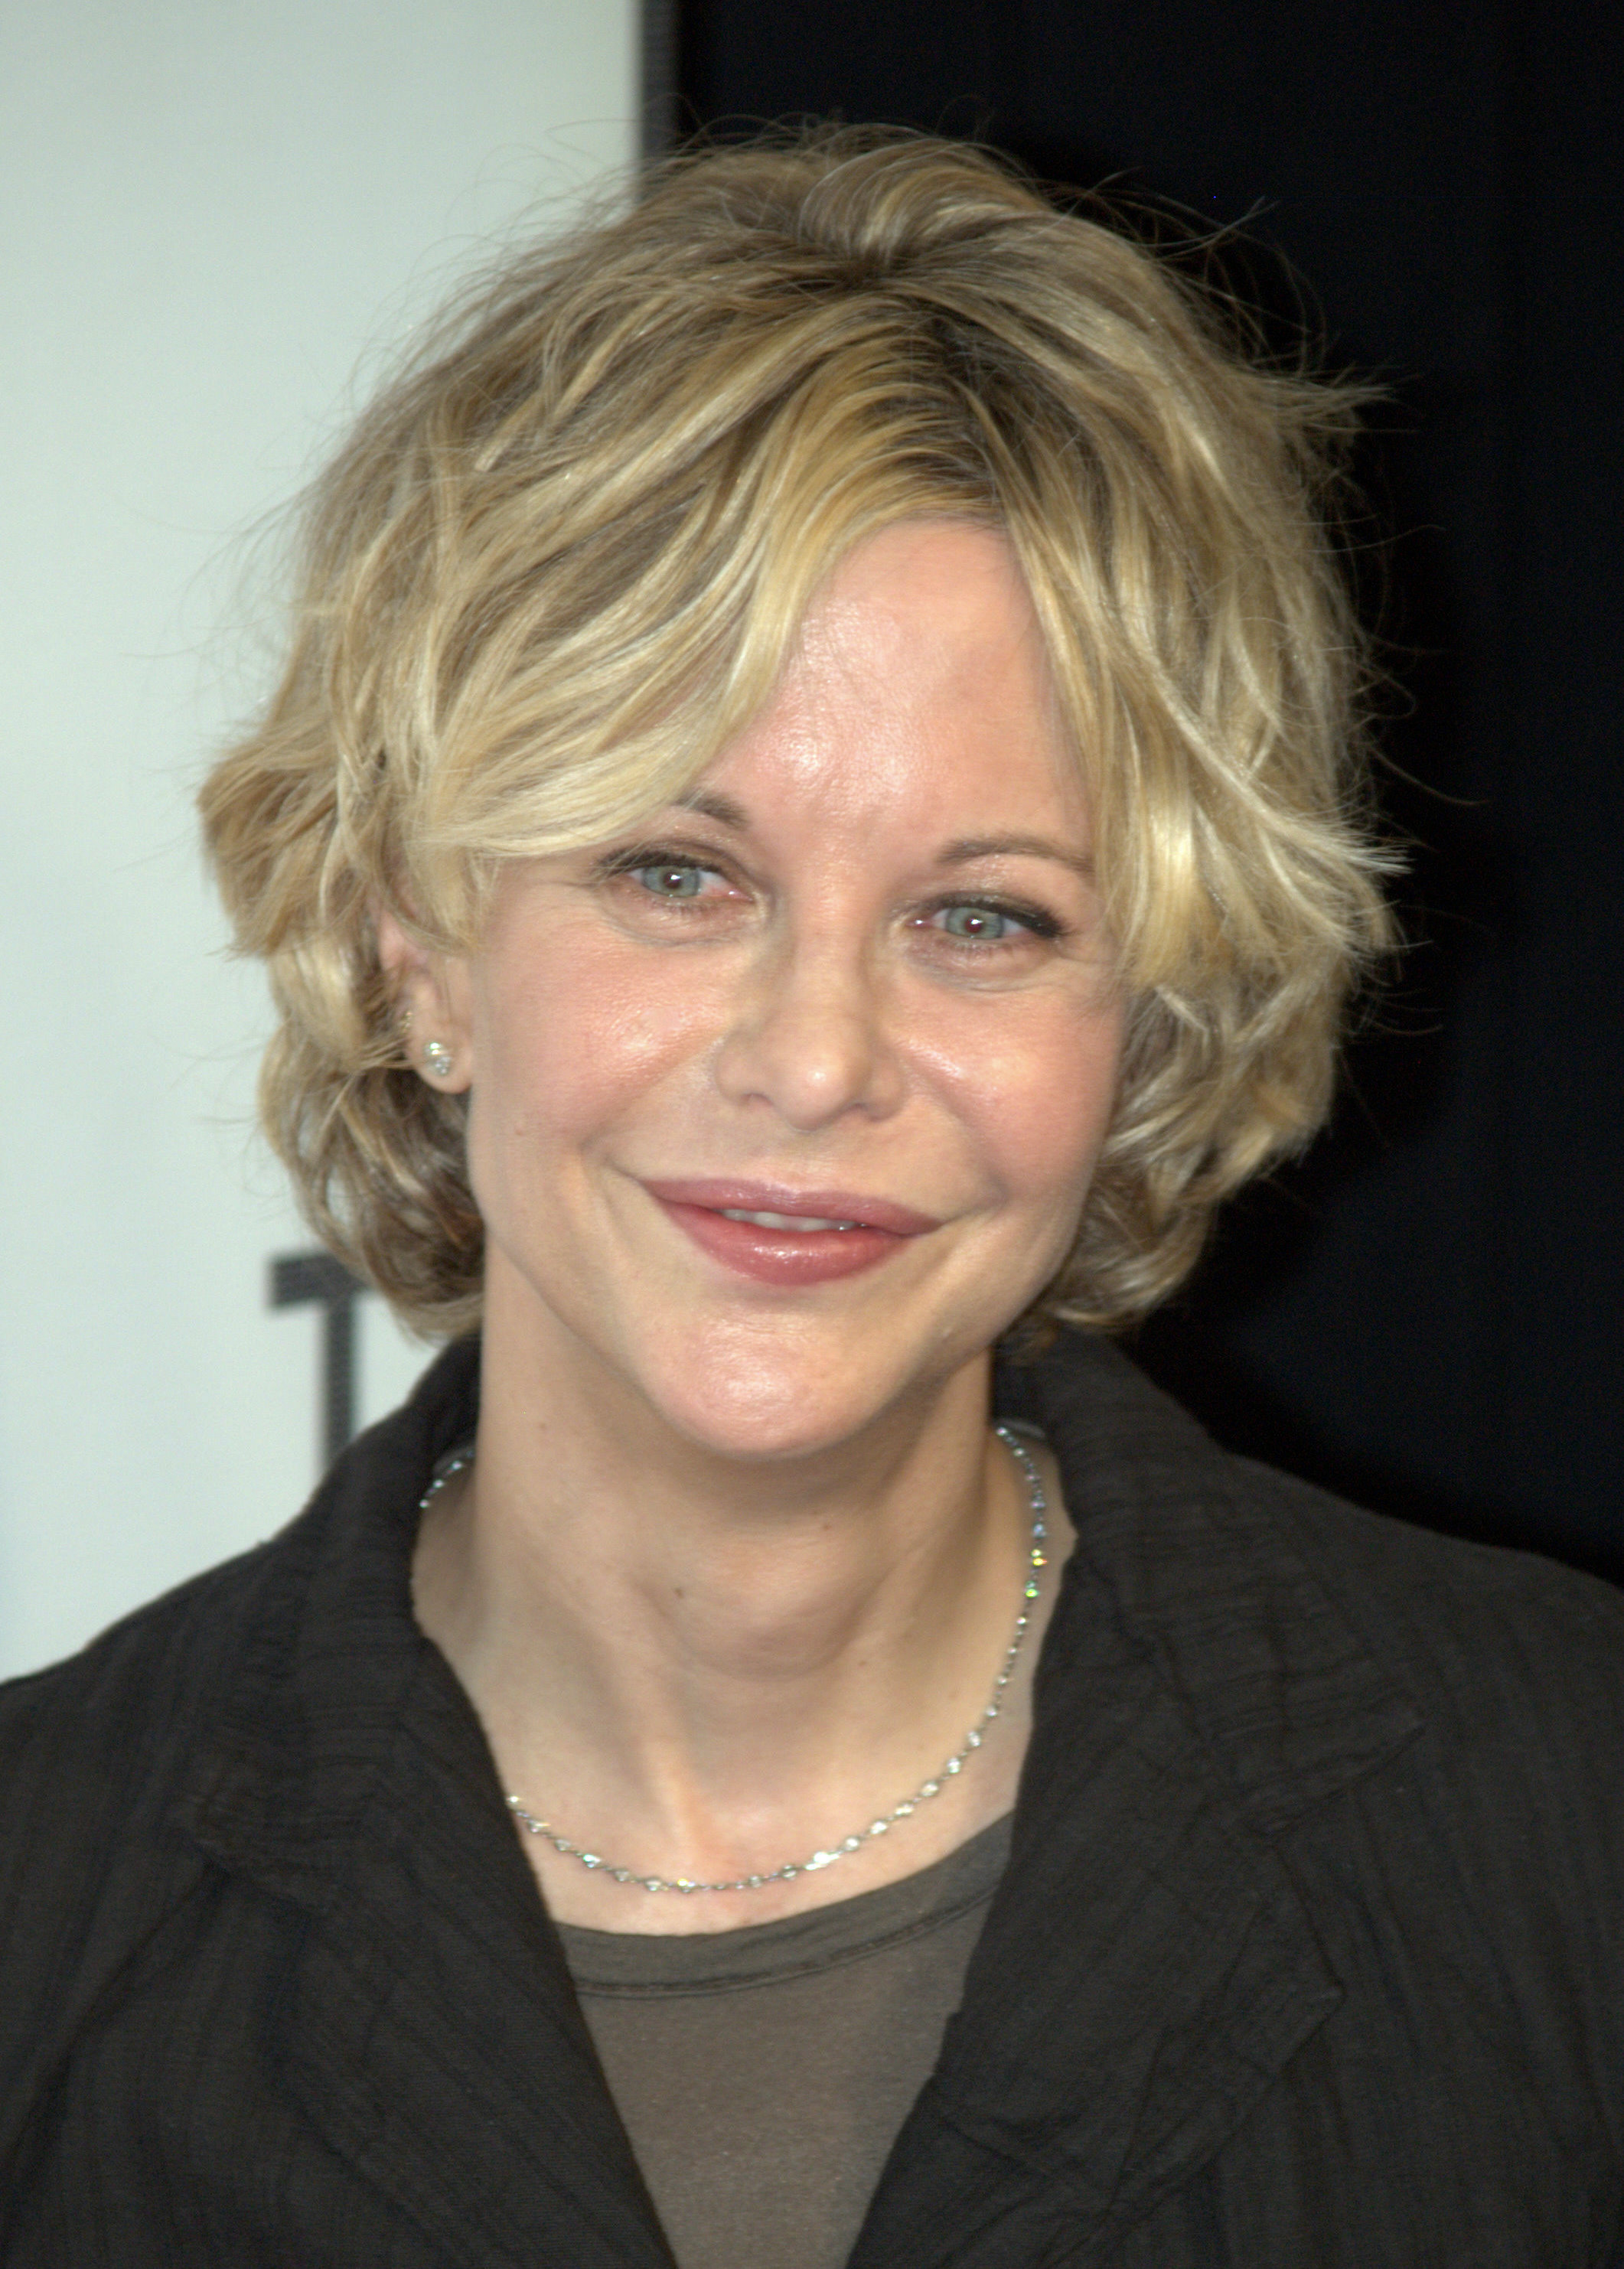 Description Meg Ryan at the 2009 Tribeca Film Festival.jpg